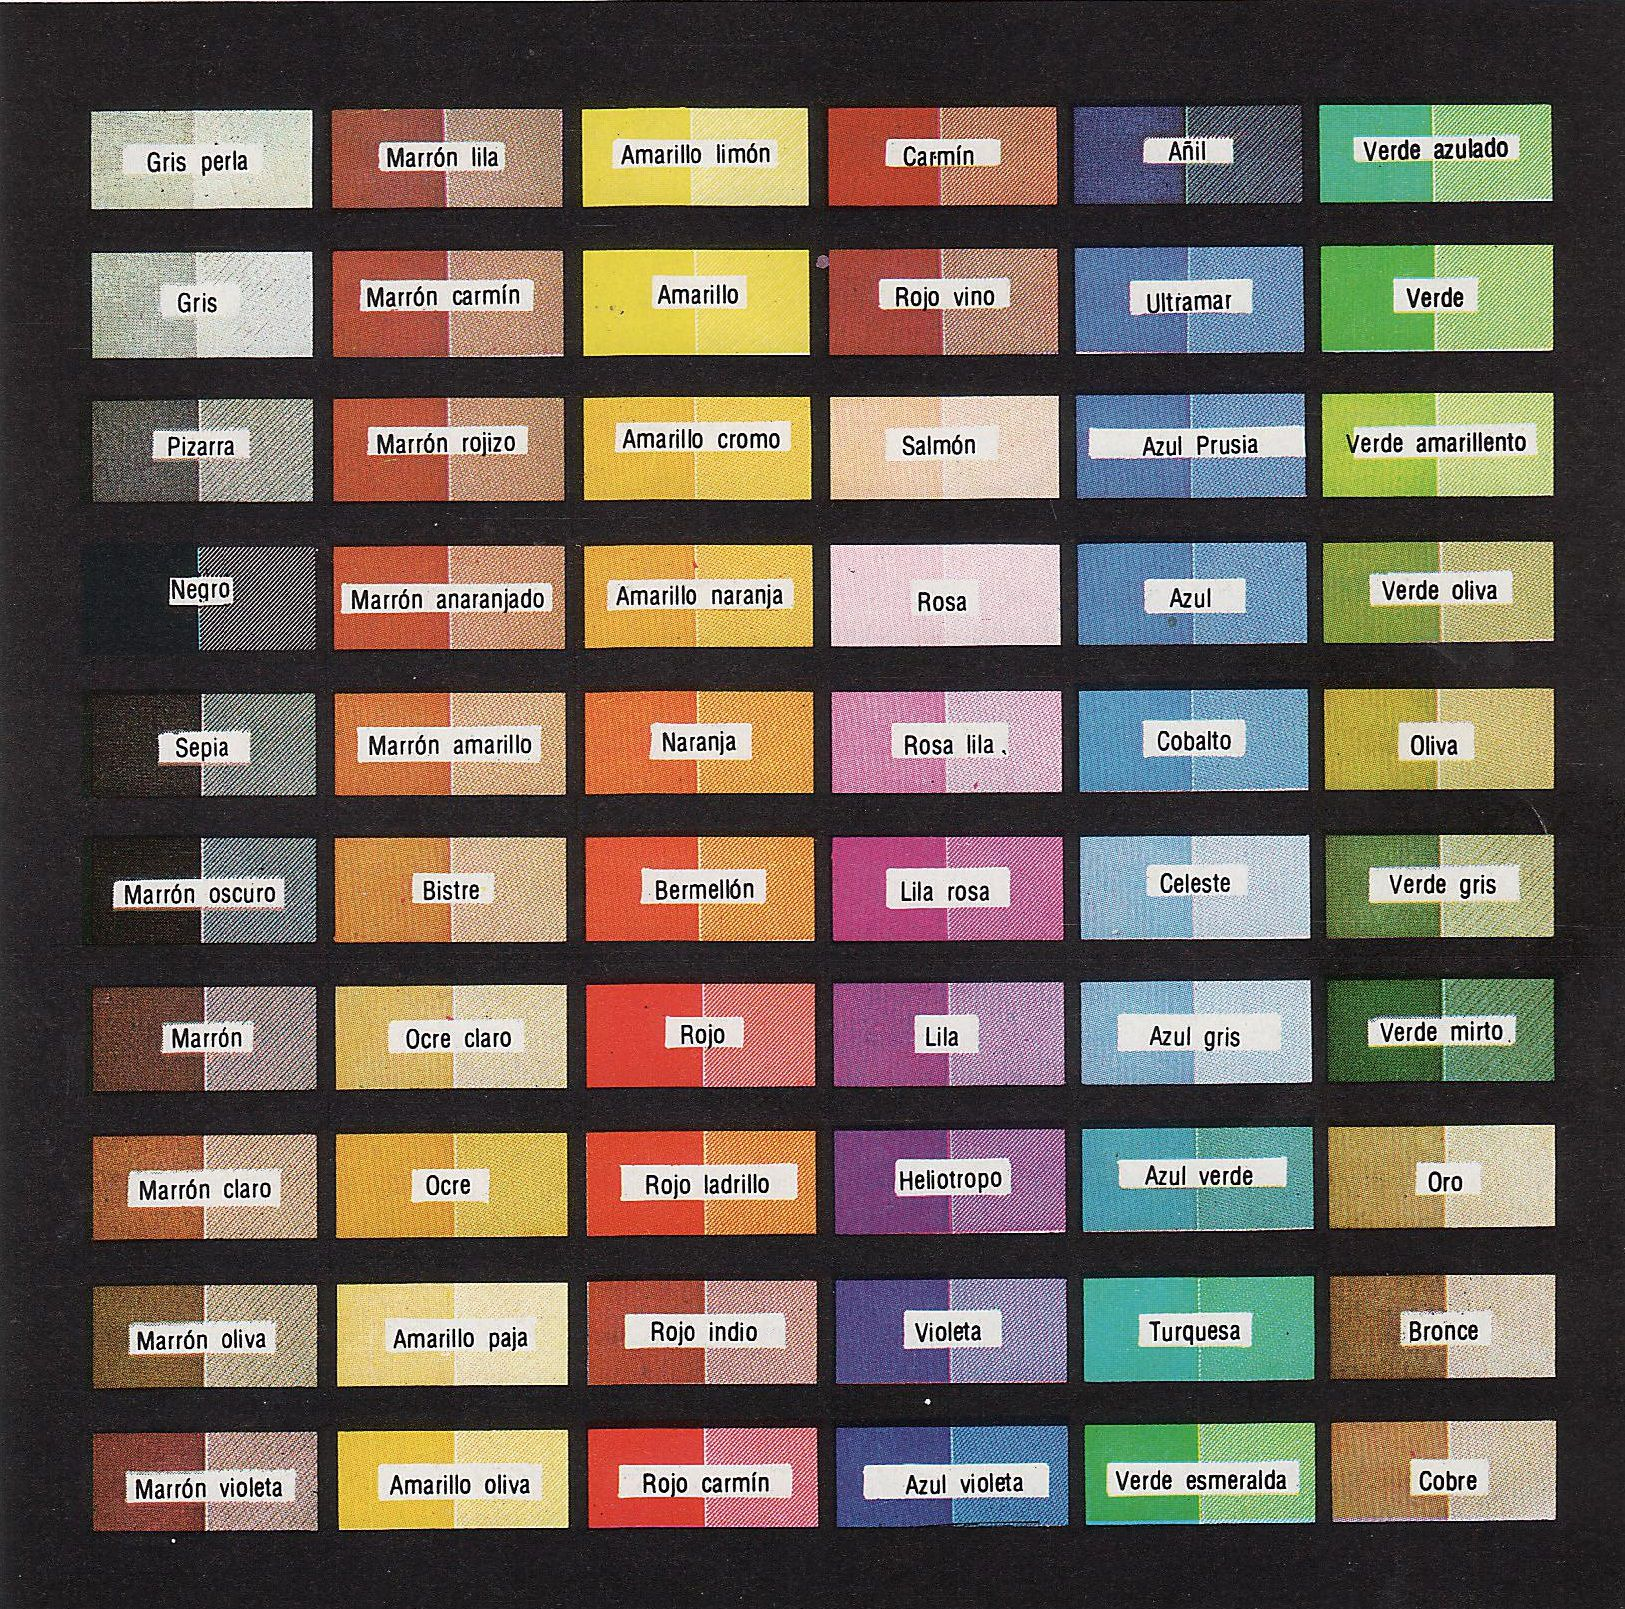 Color of the stamps